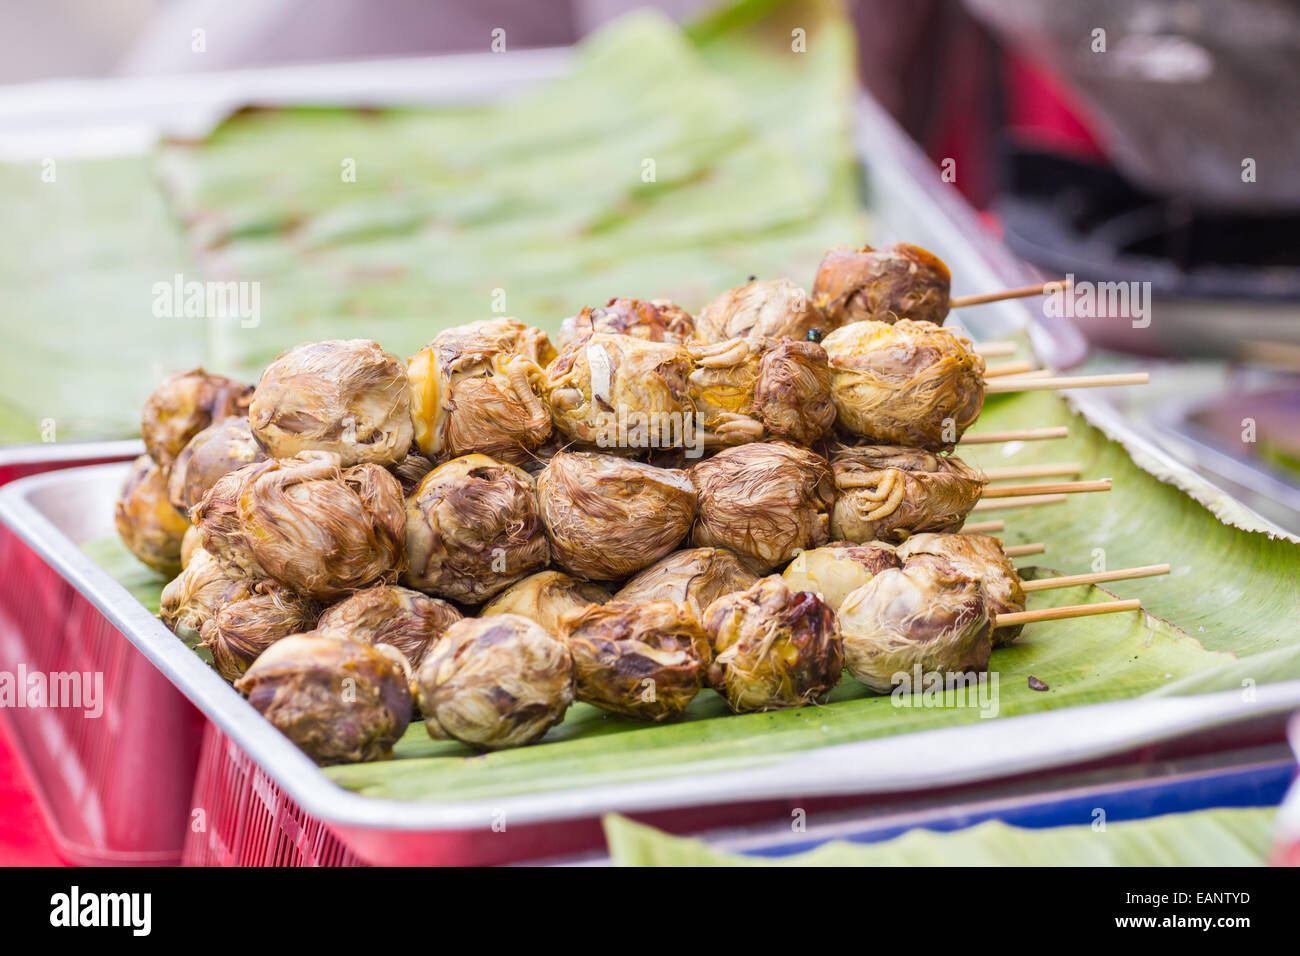 grilled egg spoiled while being incubated, thai traditional food - Stock Image